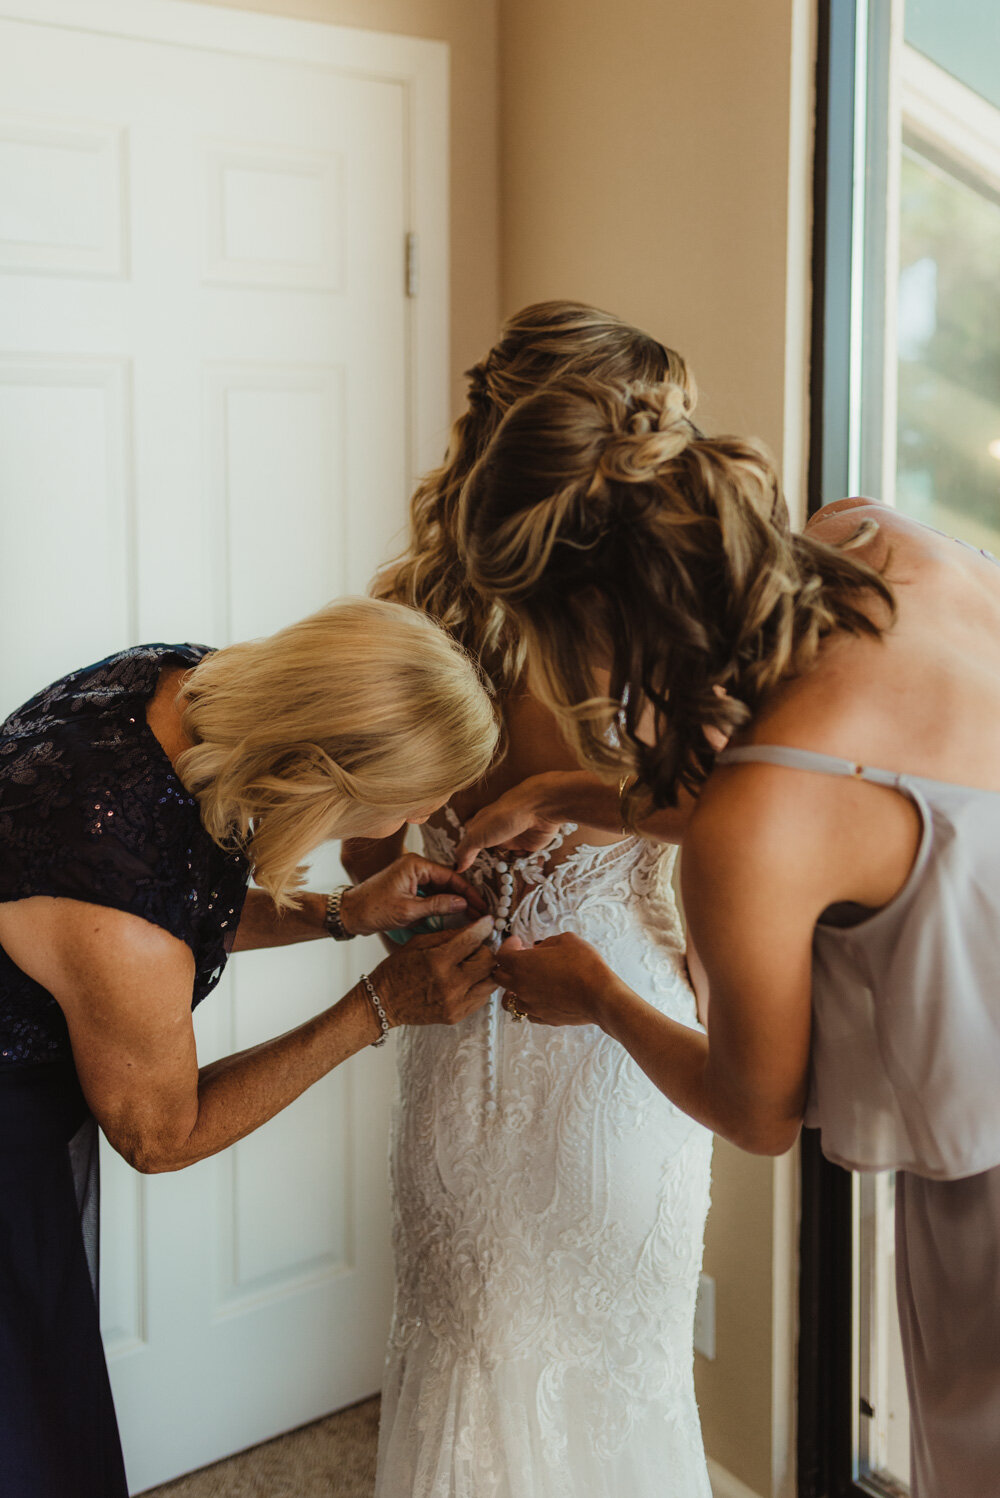 Edgewood Tahoe Wedding, bride getting her wedding dress on photo